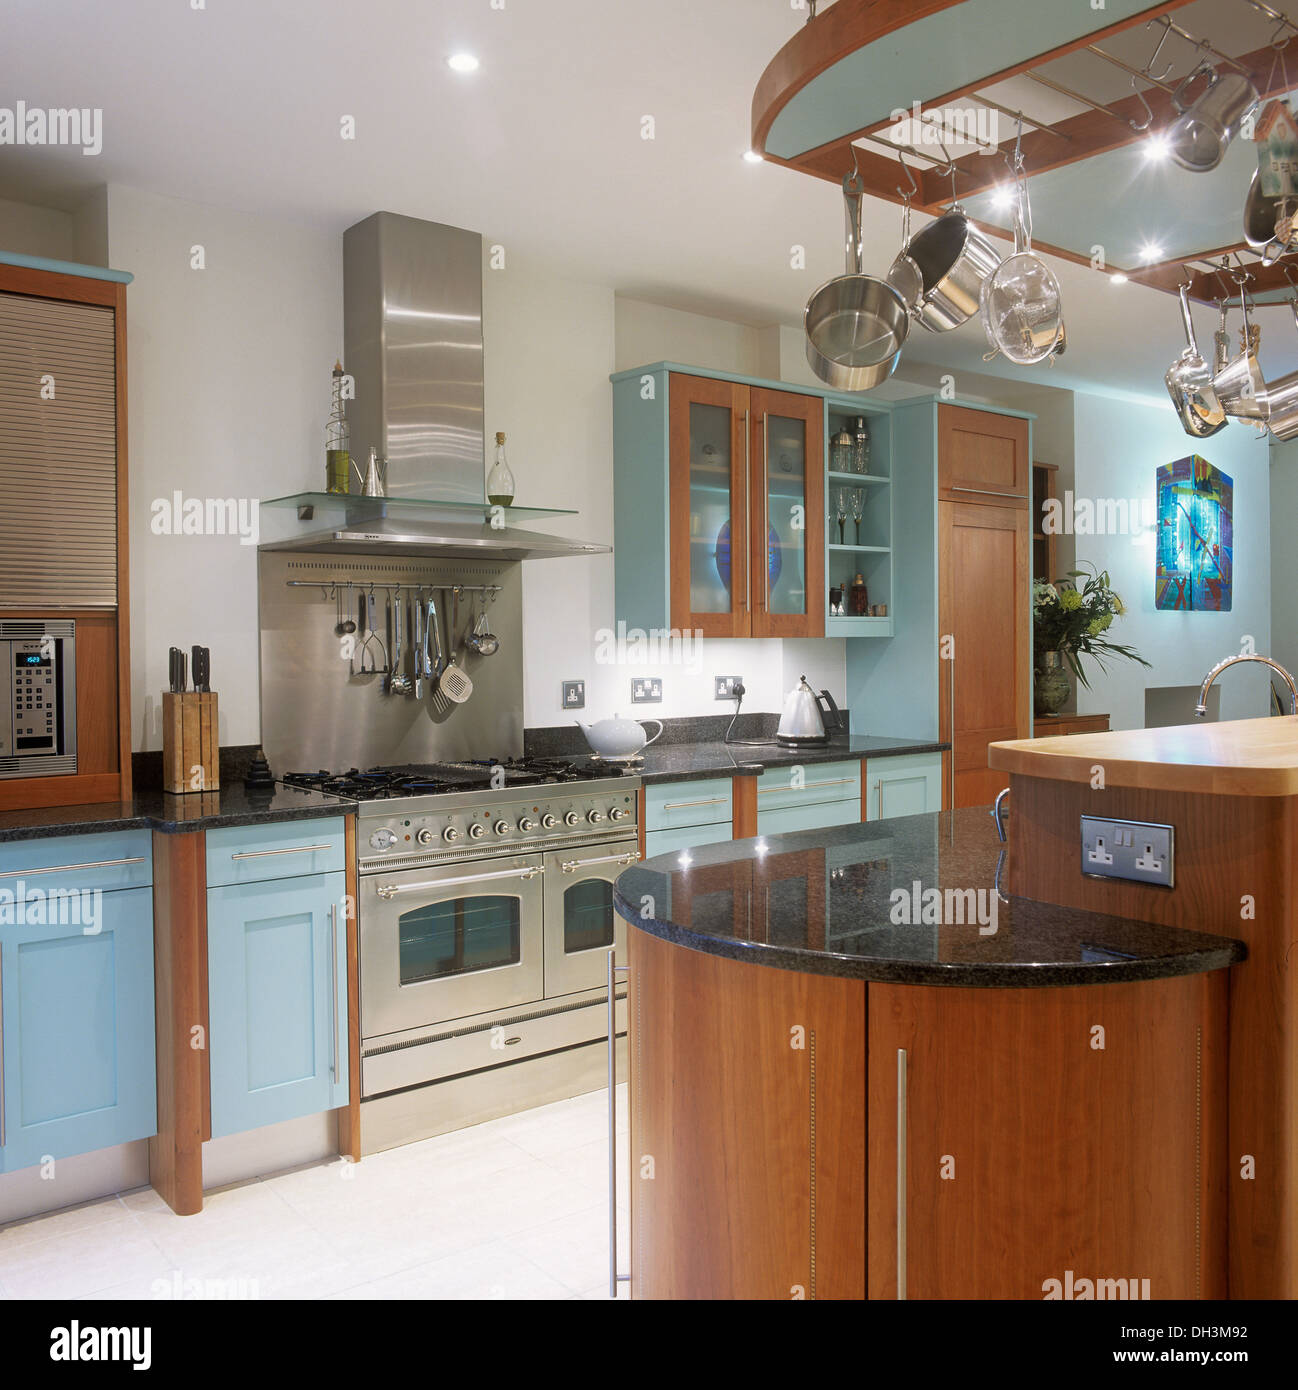 Stainless Steel Extractor And Splash Back Above Steel